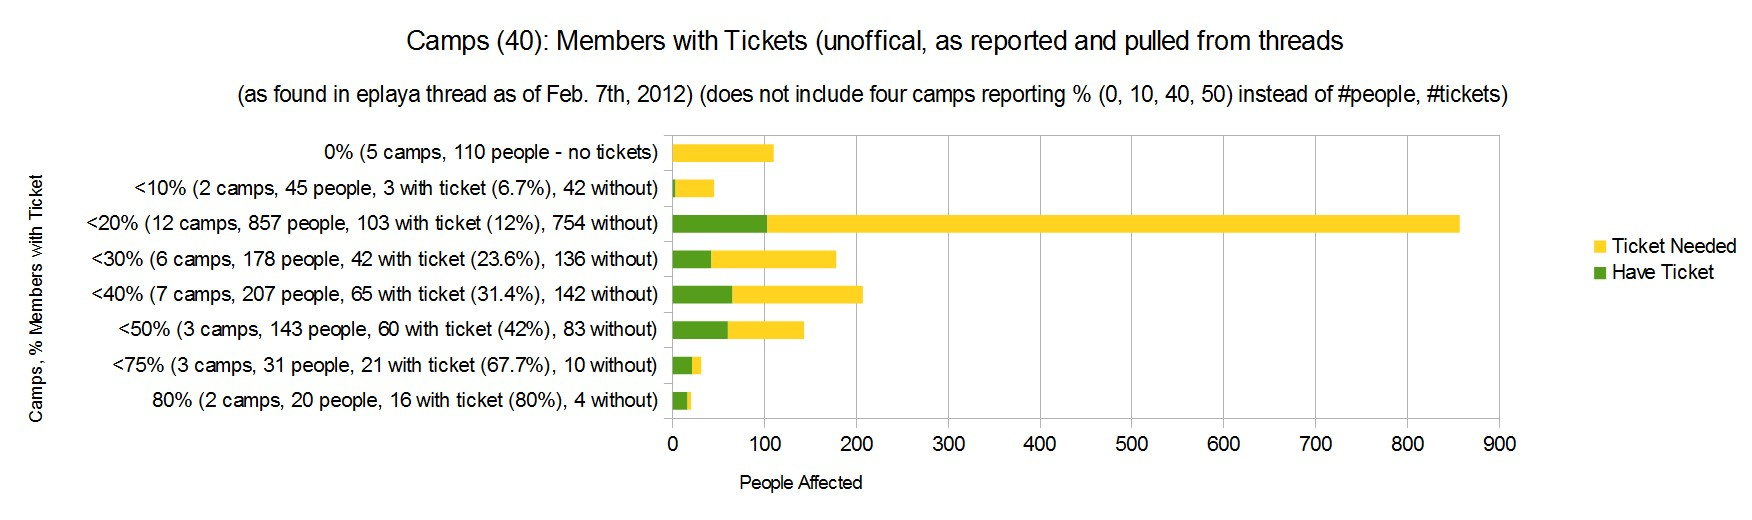 BRC 2012, camps reported members with tickets.jpg